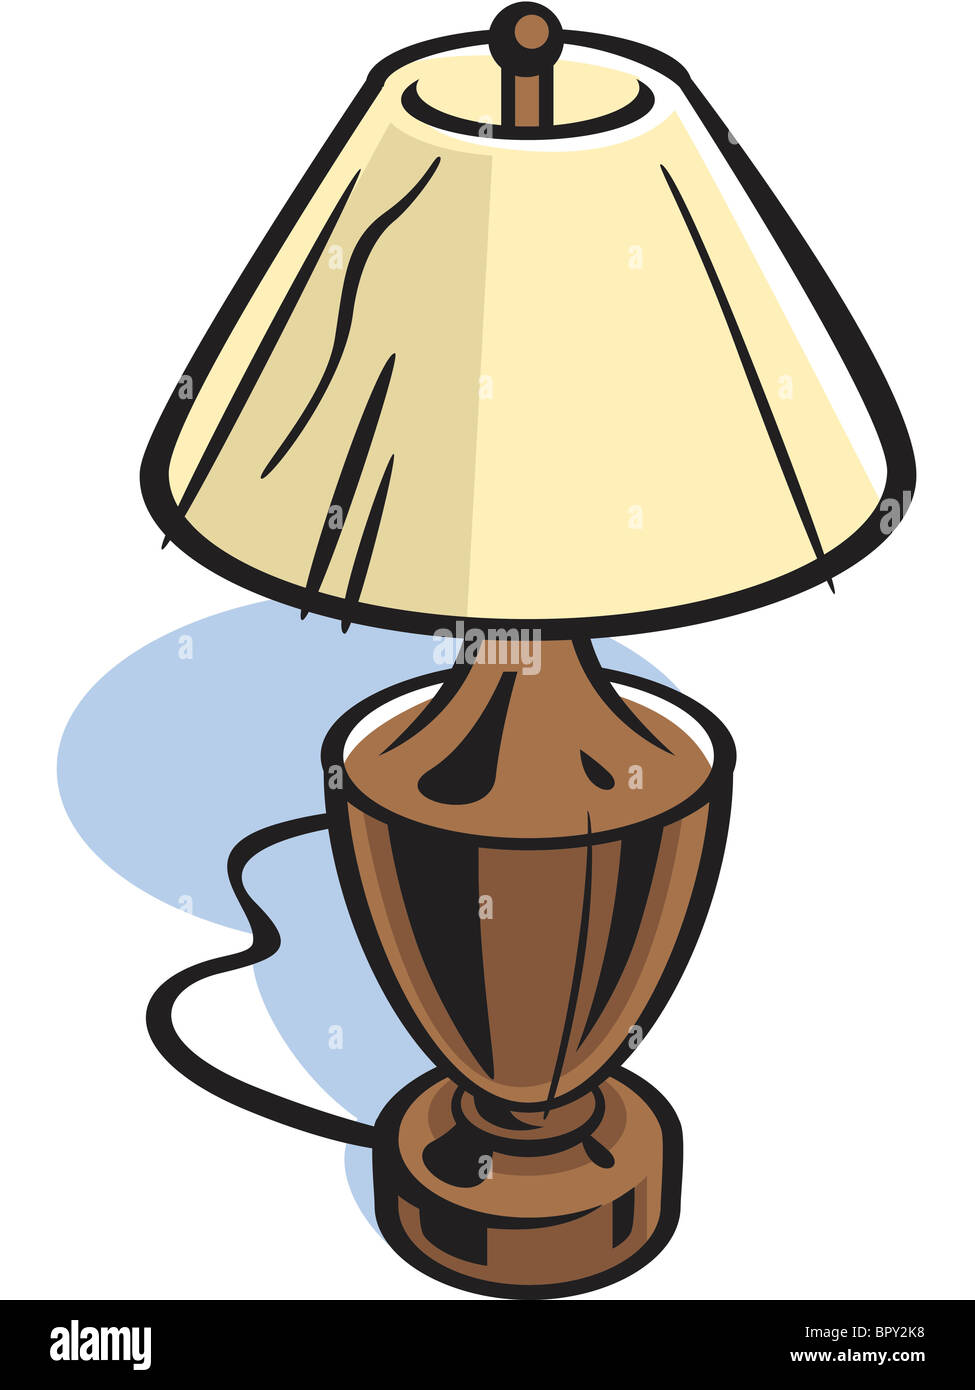 Drawing of a table lamp stock photo royalty free image 31327612 drawing of a table lamp geotapseo Gallery